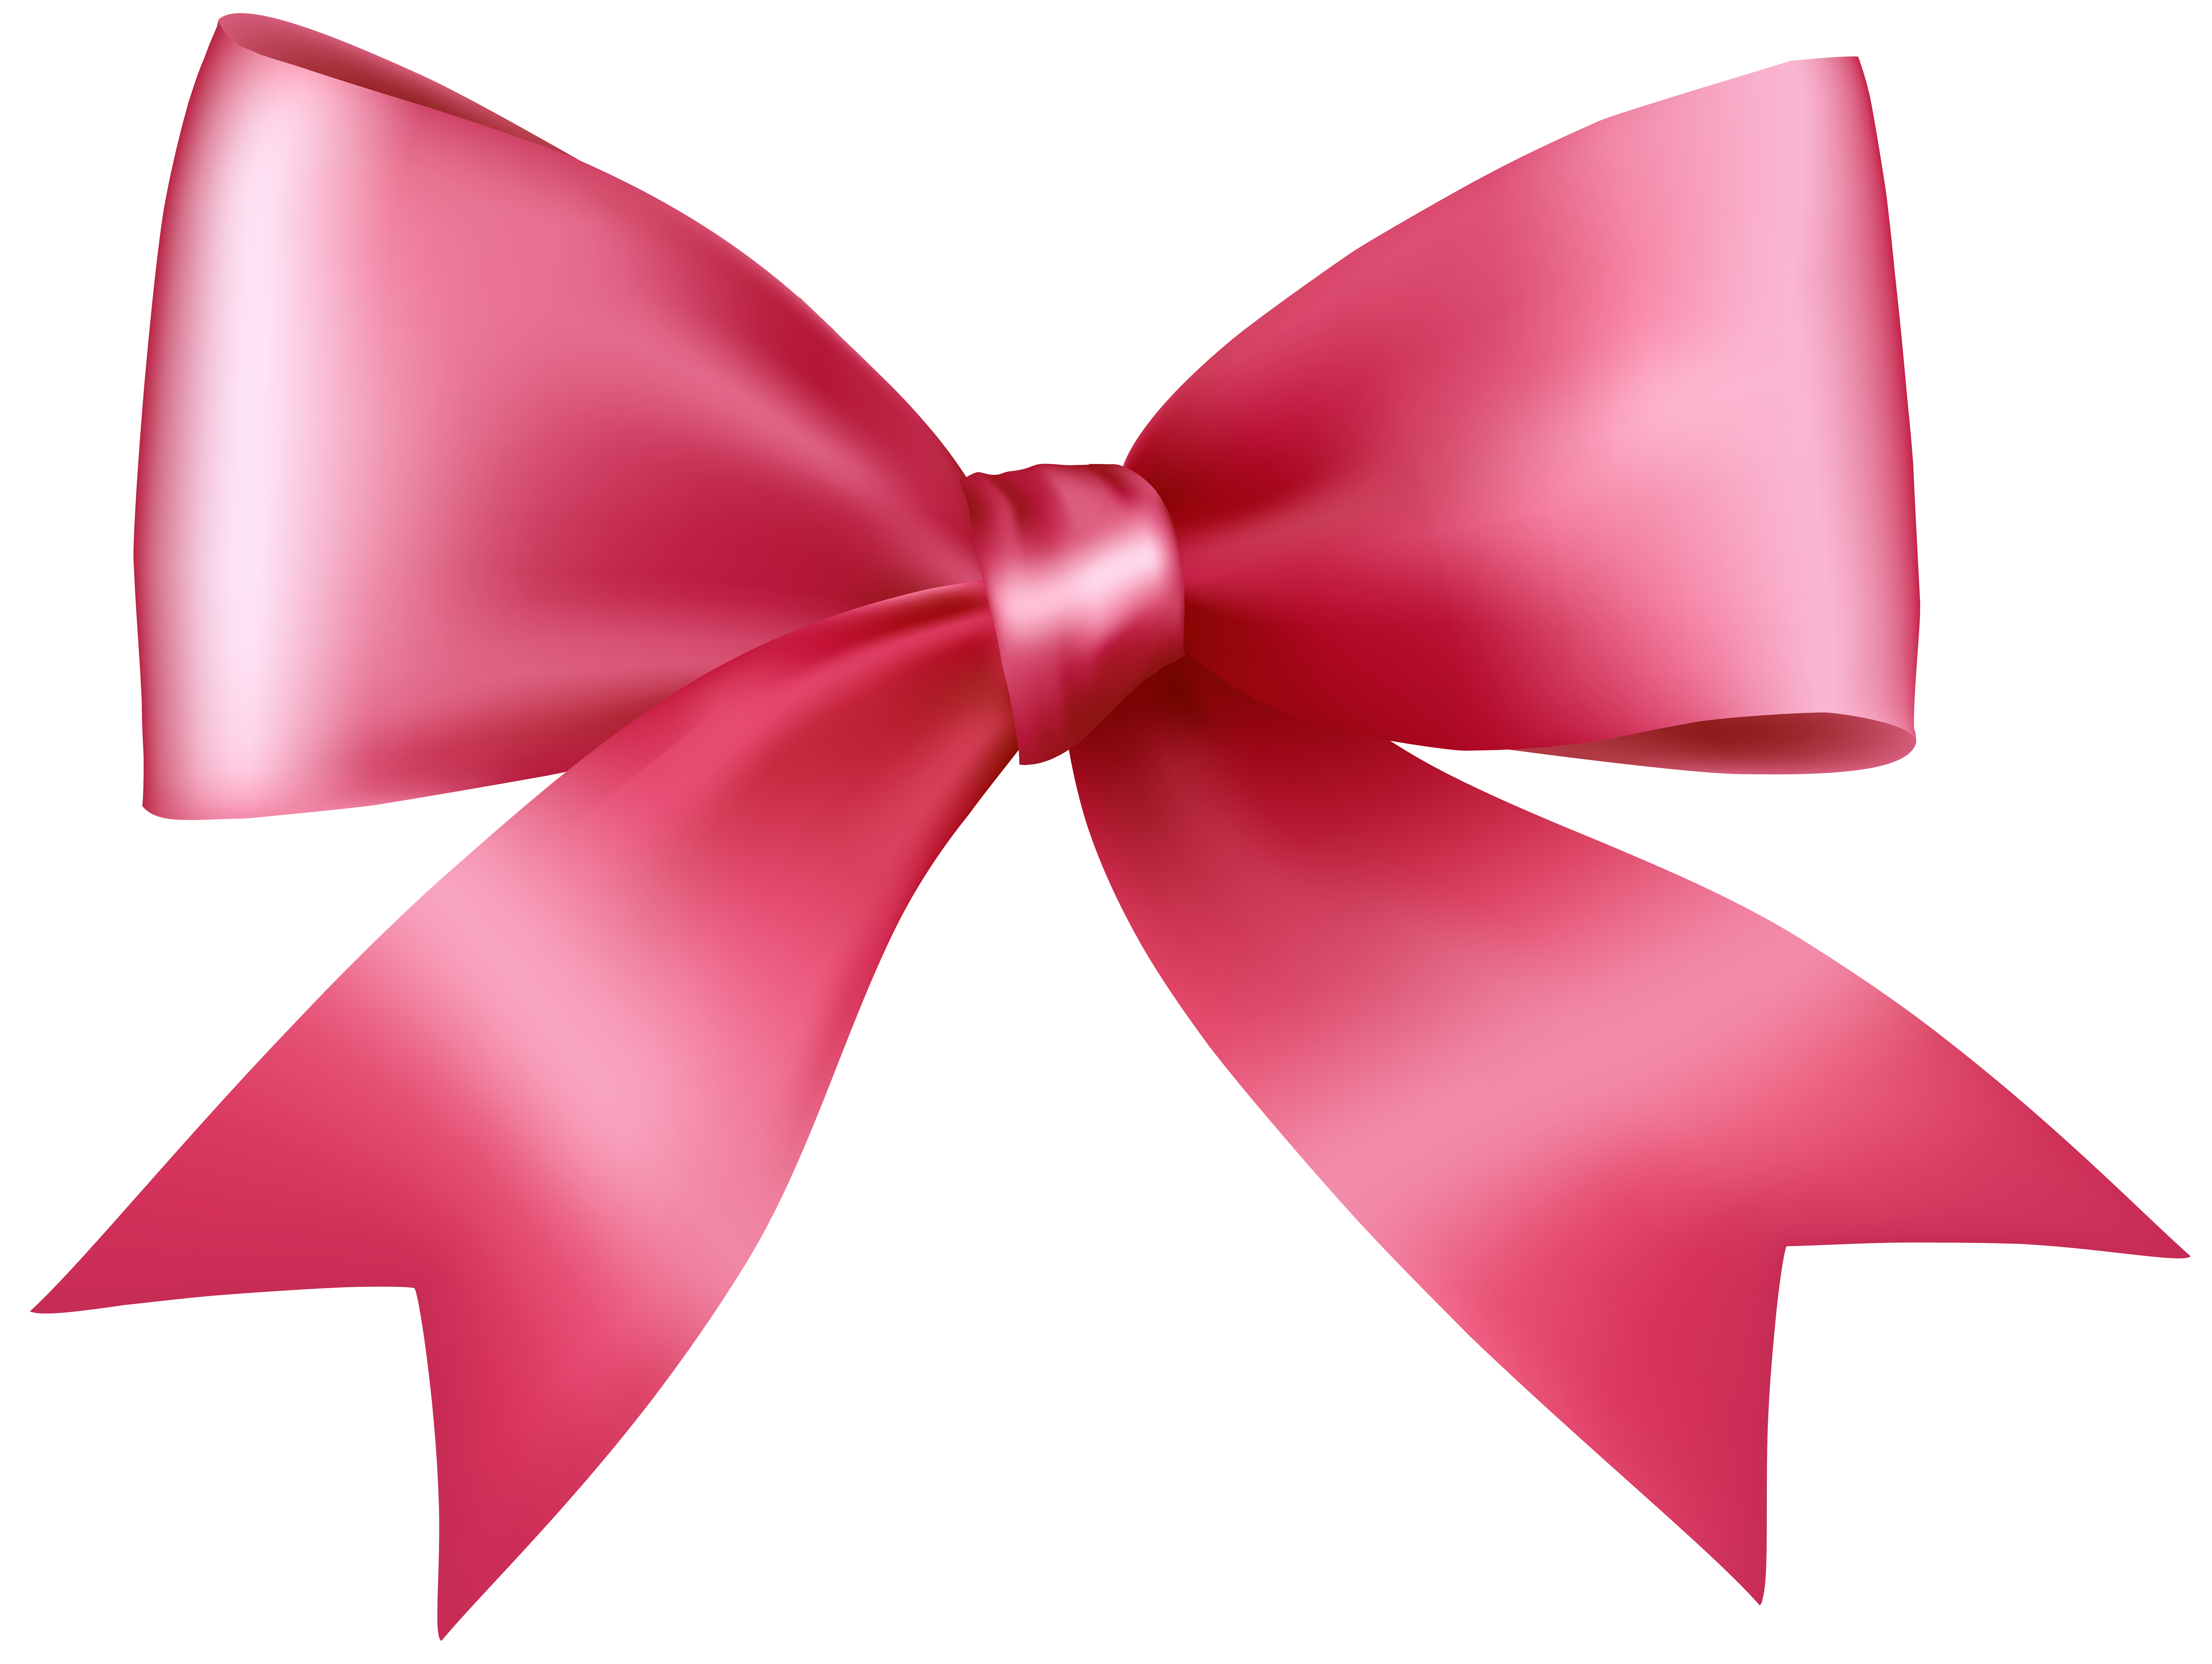 Pink bow tie png. Transparent clip art image